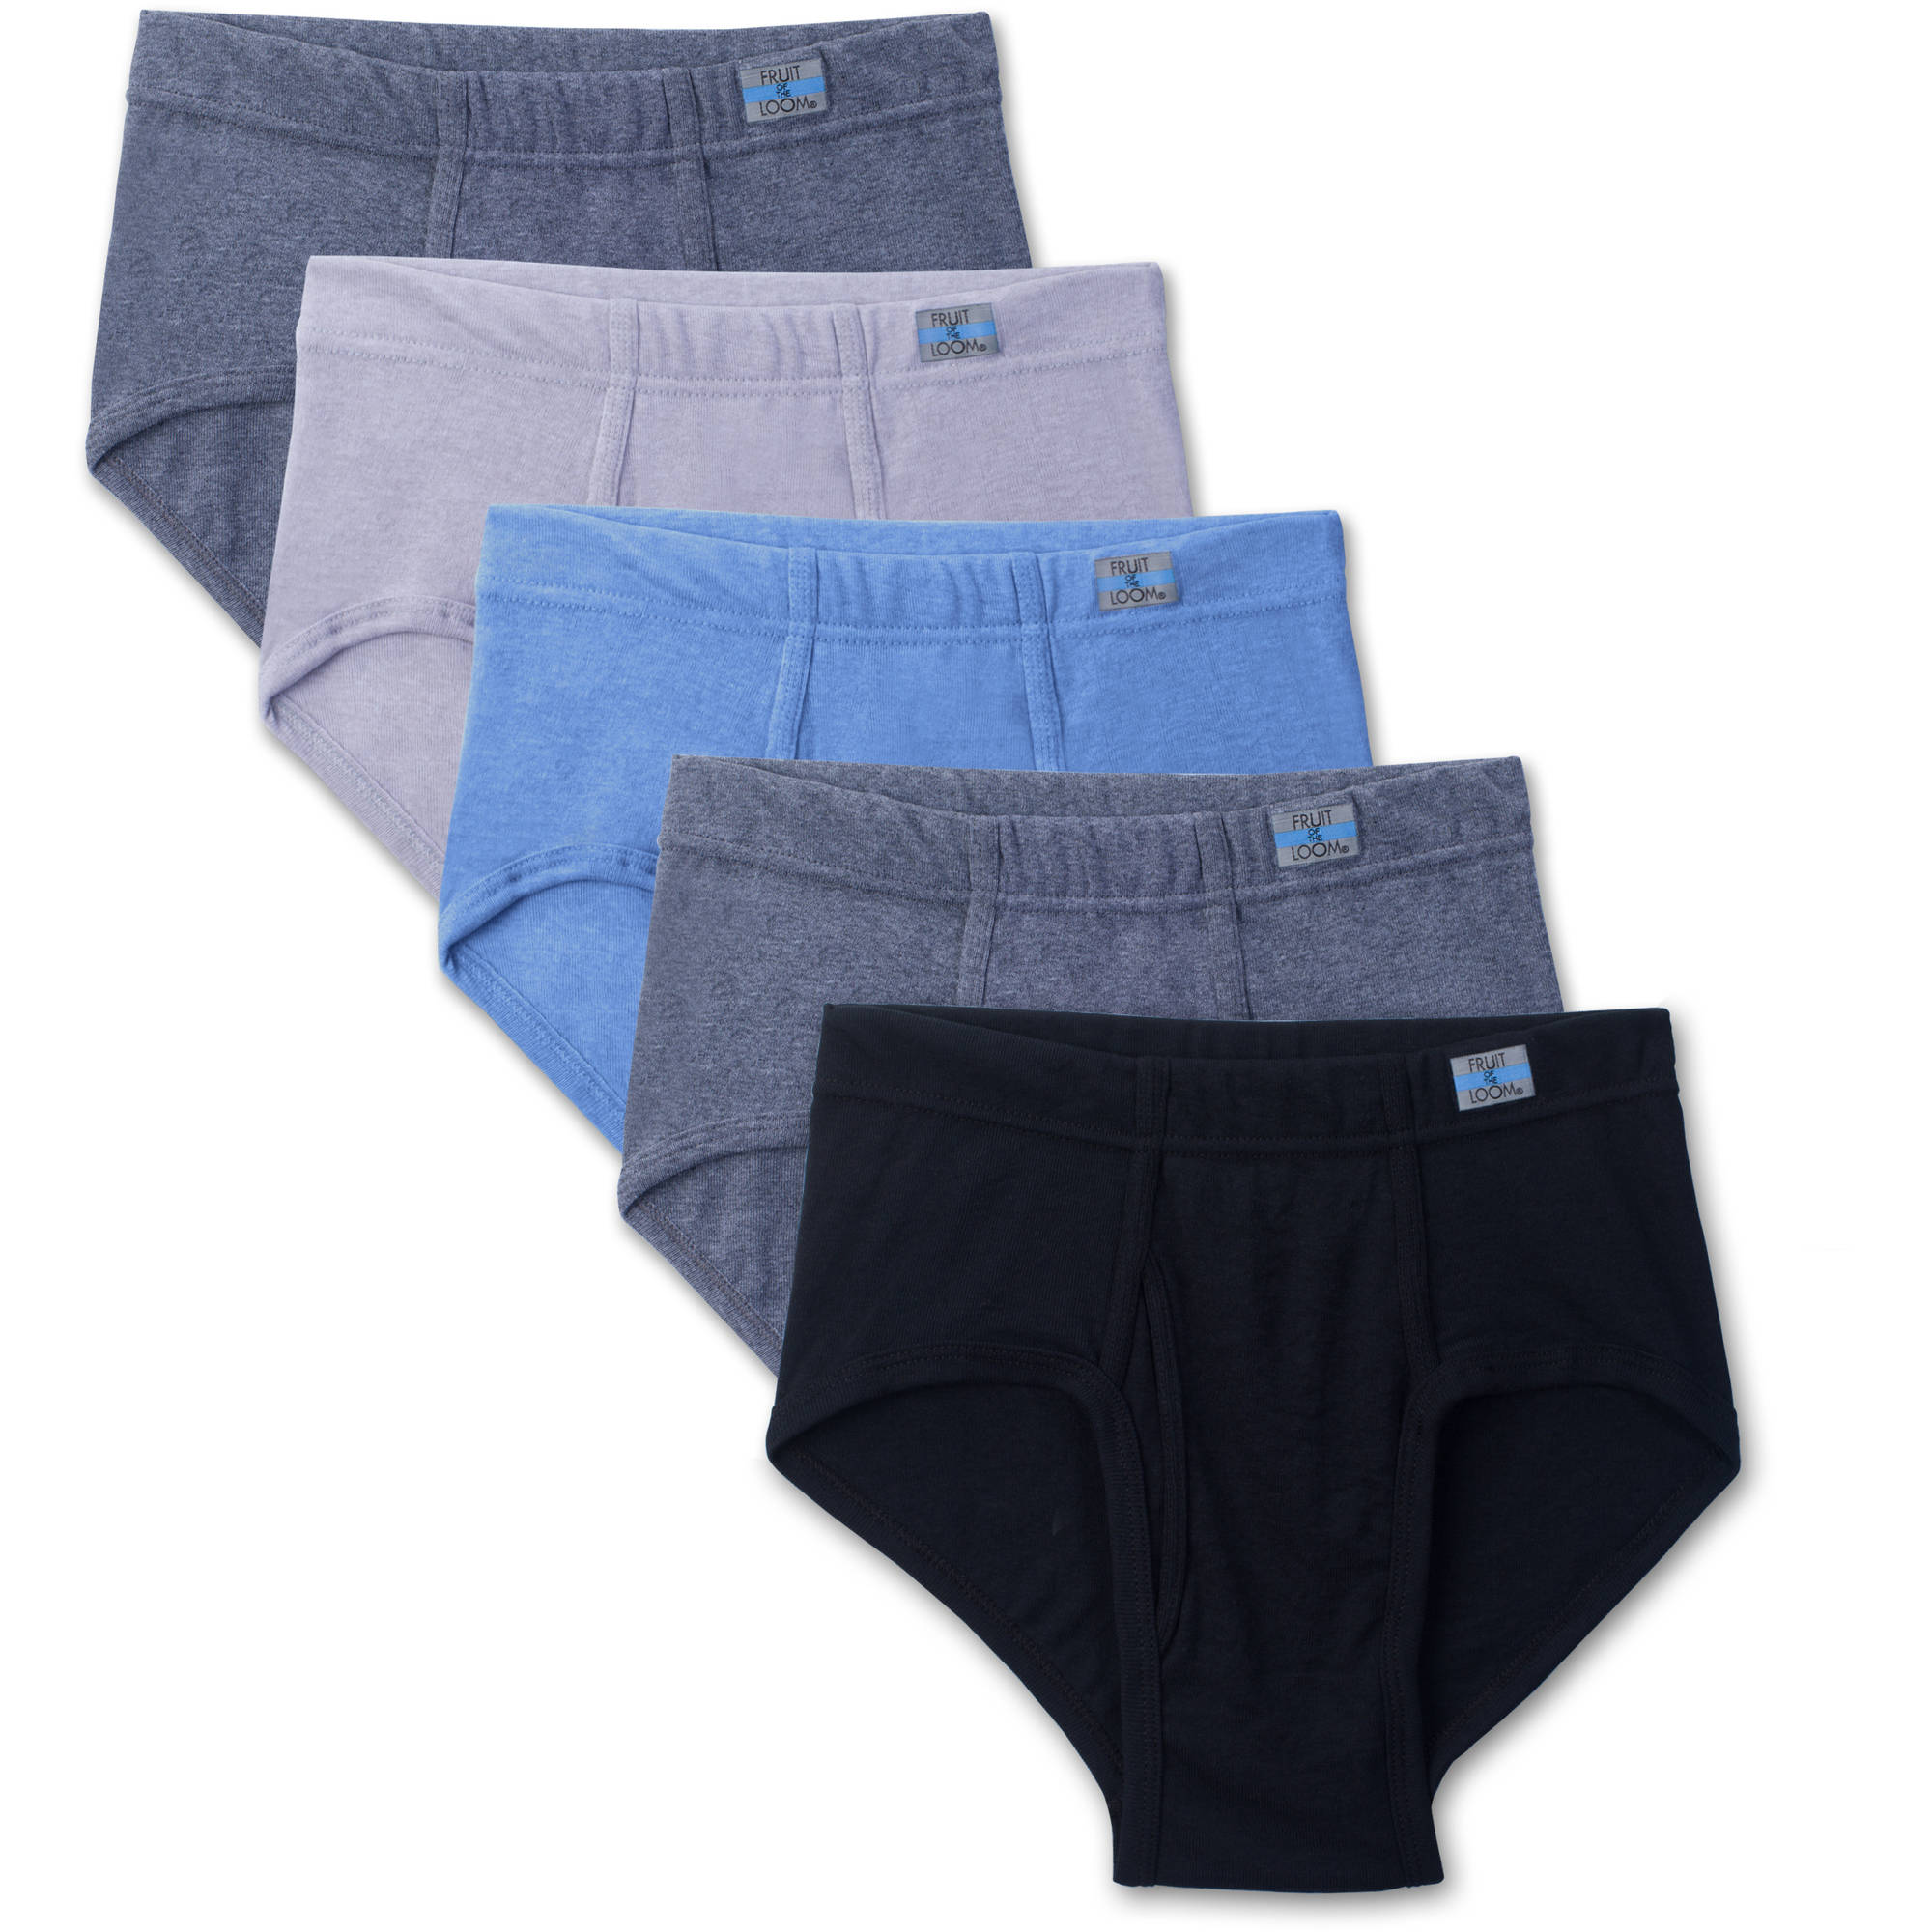 Fruit of the Loom Big Men's Beyondsoft Fashion Brief, 2XL, 5 Pack by Generic